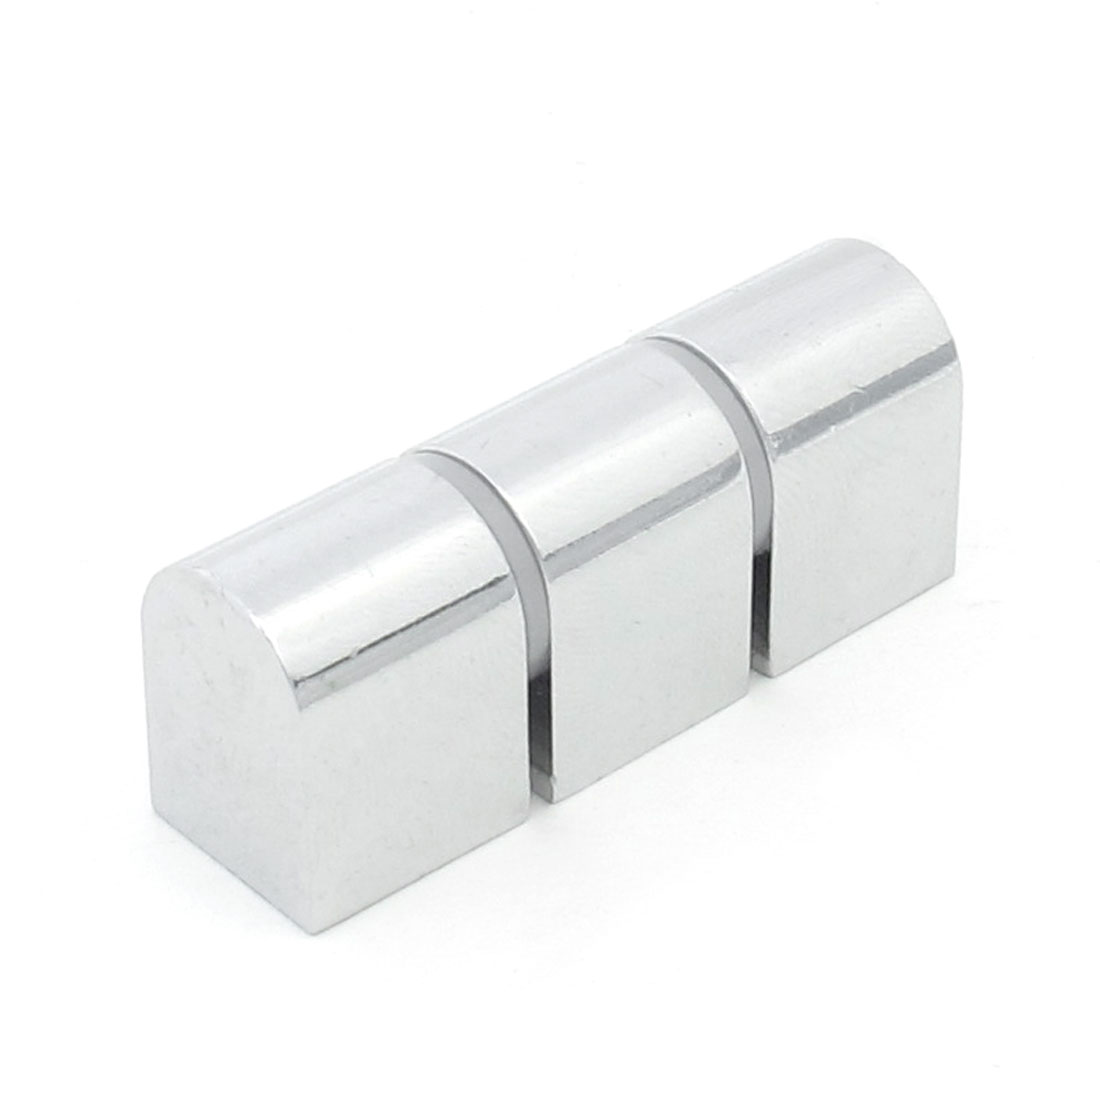 Silver Tone Polished Metal Cabinet Door Lift Off Hinge Replacement